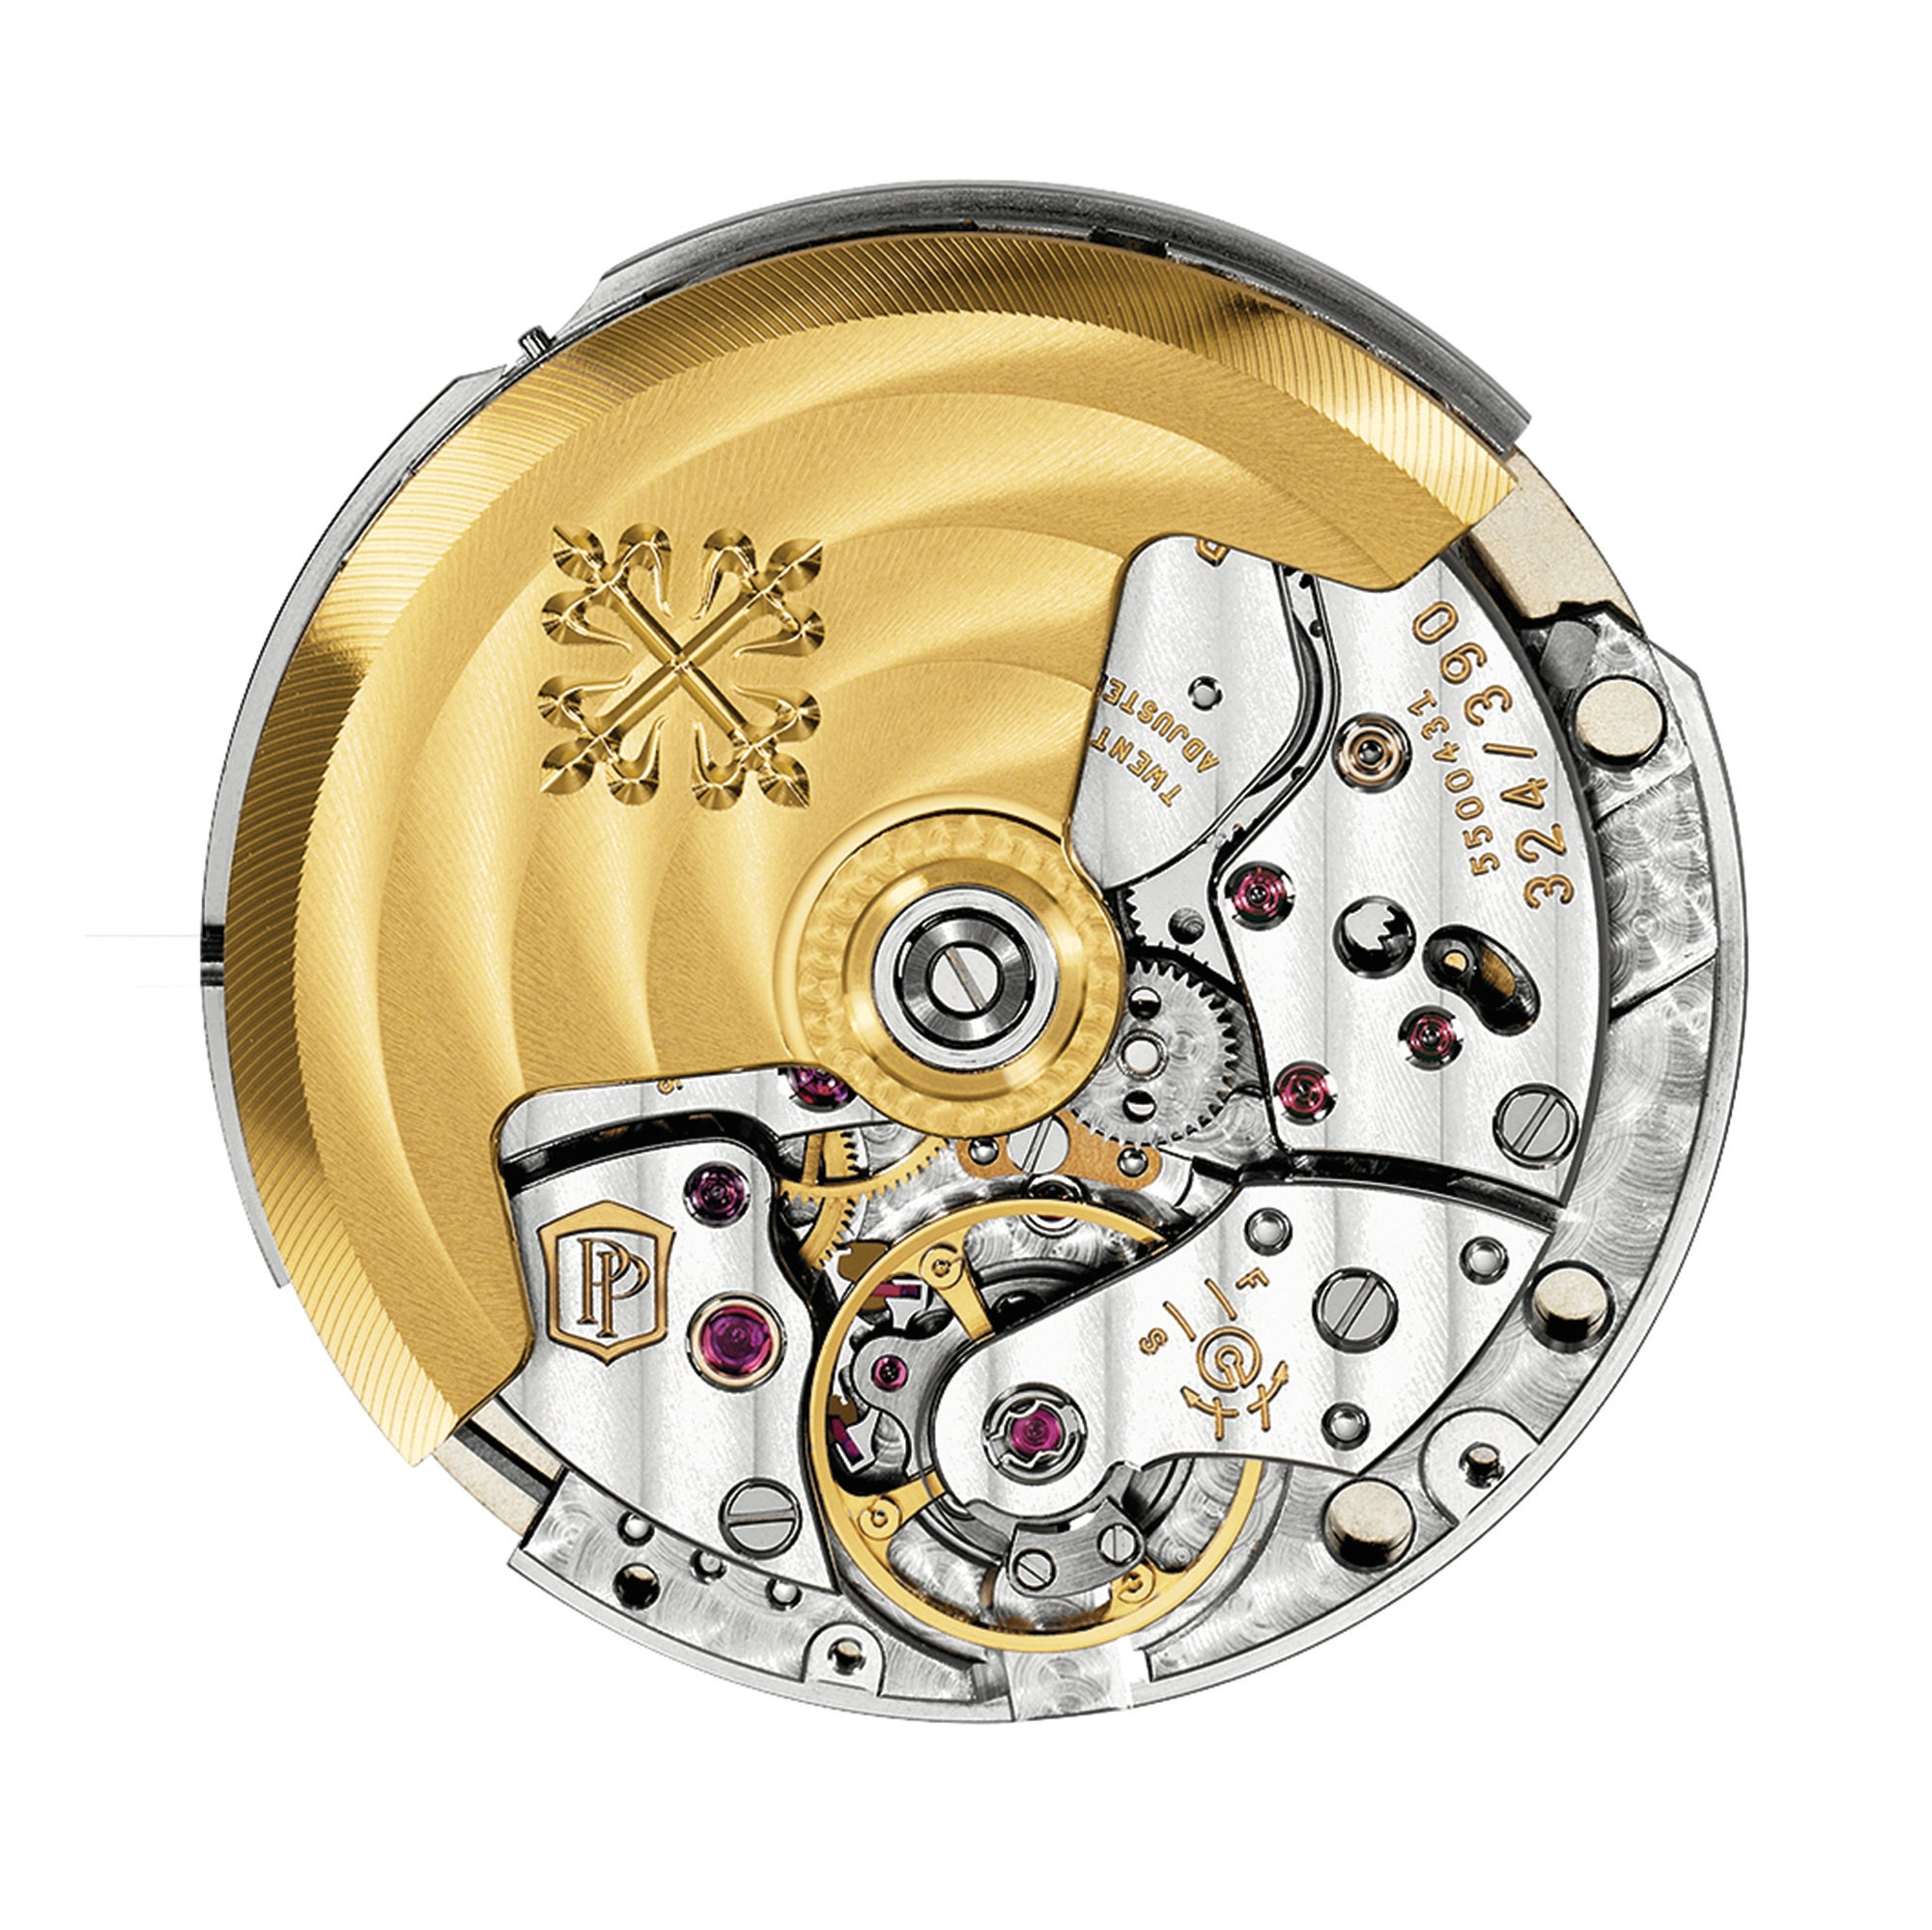 Patek Philippe's Caliber 324 S C is marked with the double P of the Patek Philippe Seal.